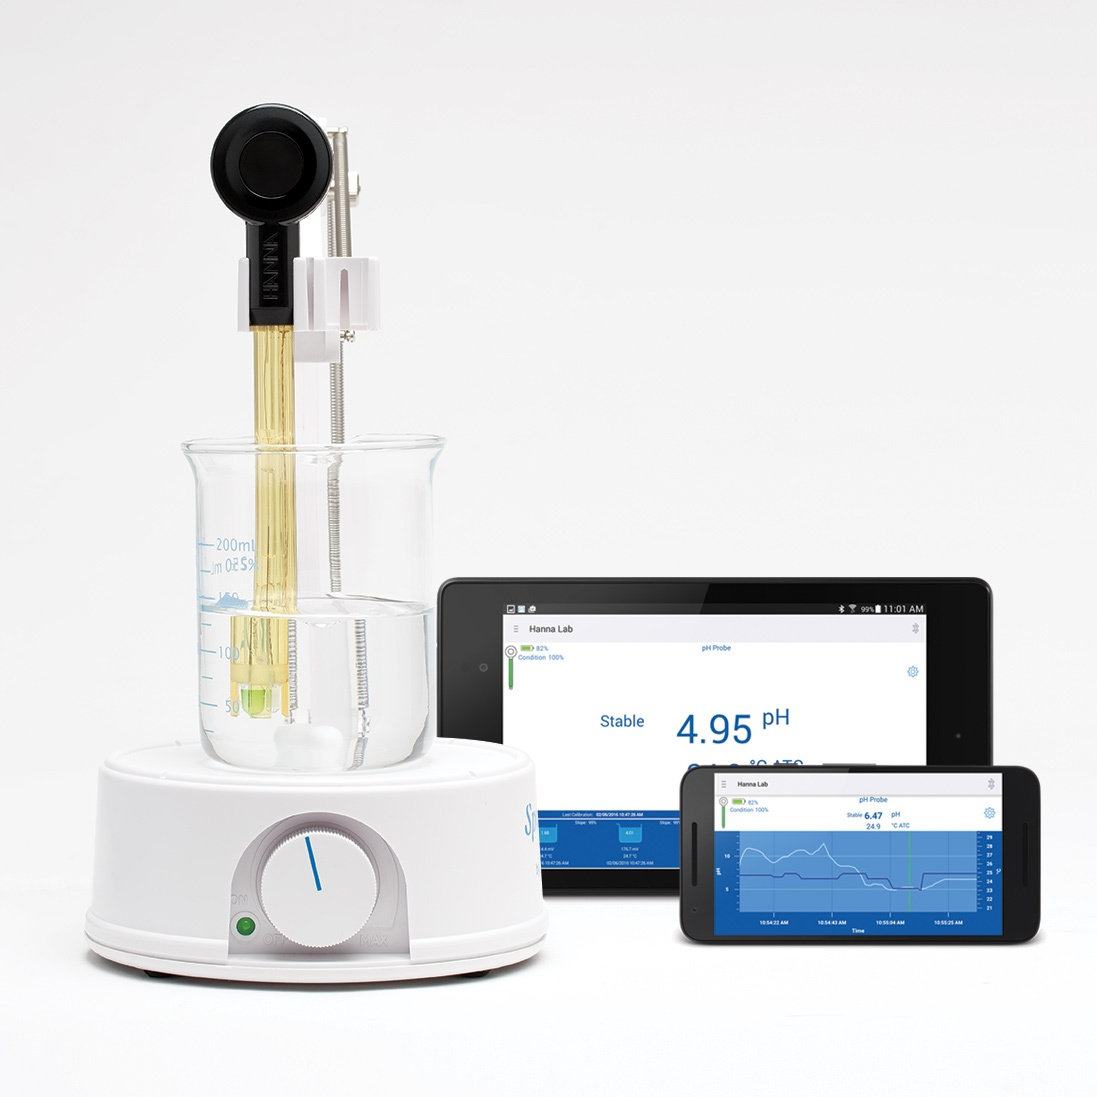 HALO electrode on a magnetic stirrer and the Hanna Lab app